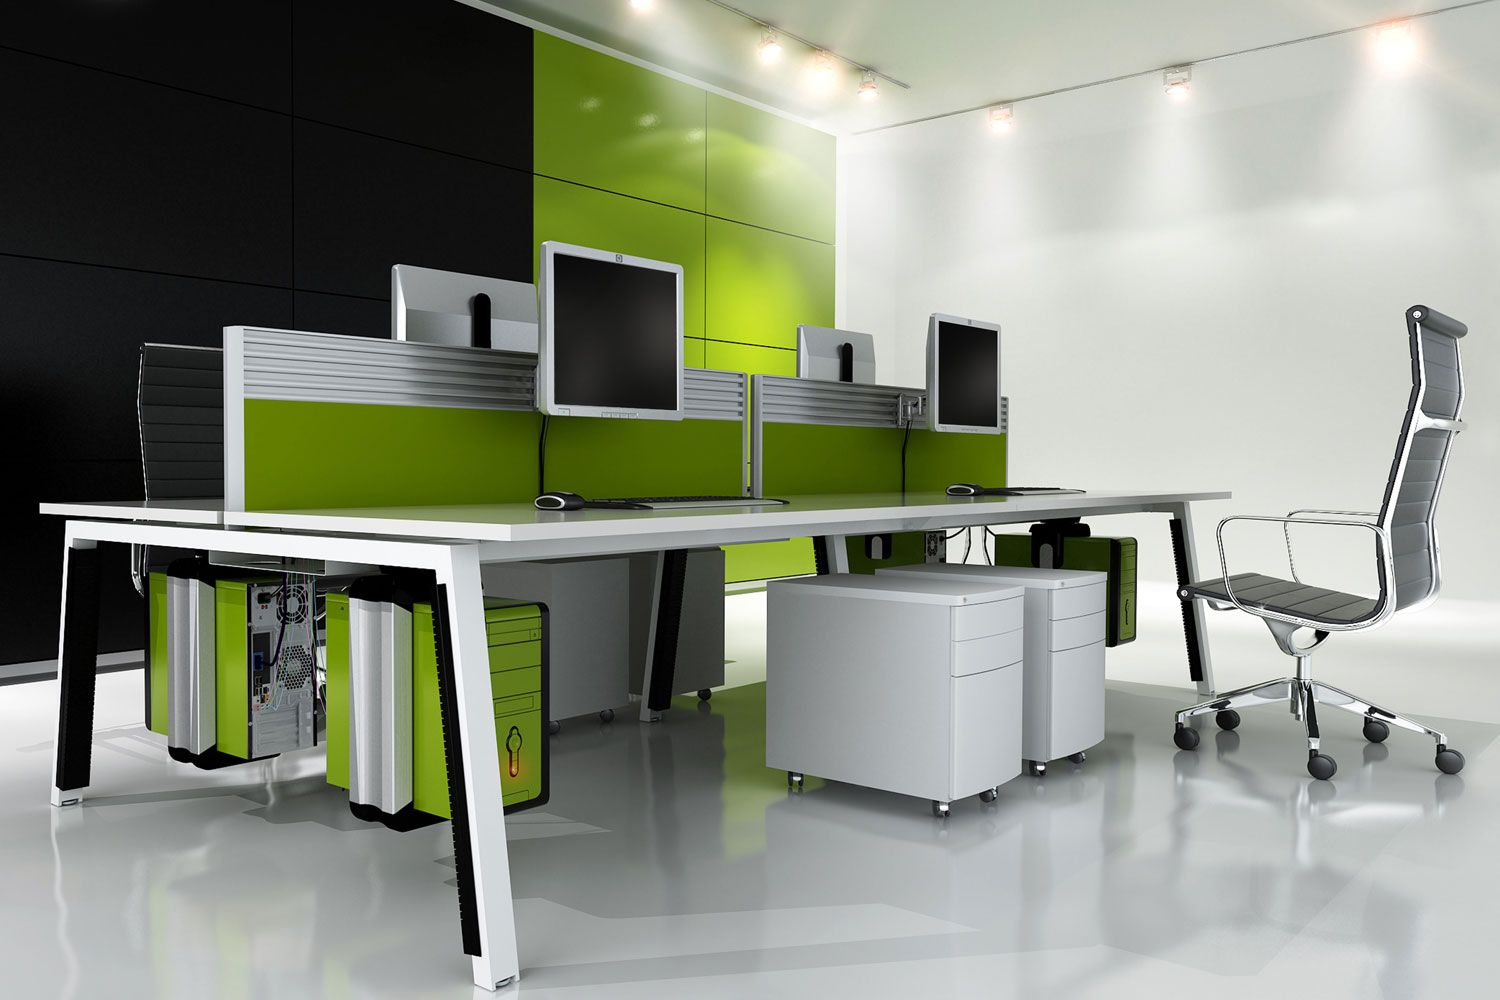 Design Your Own Office Office Interiors  Google Search  Places To Visit  Pinterest .